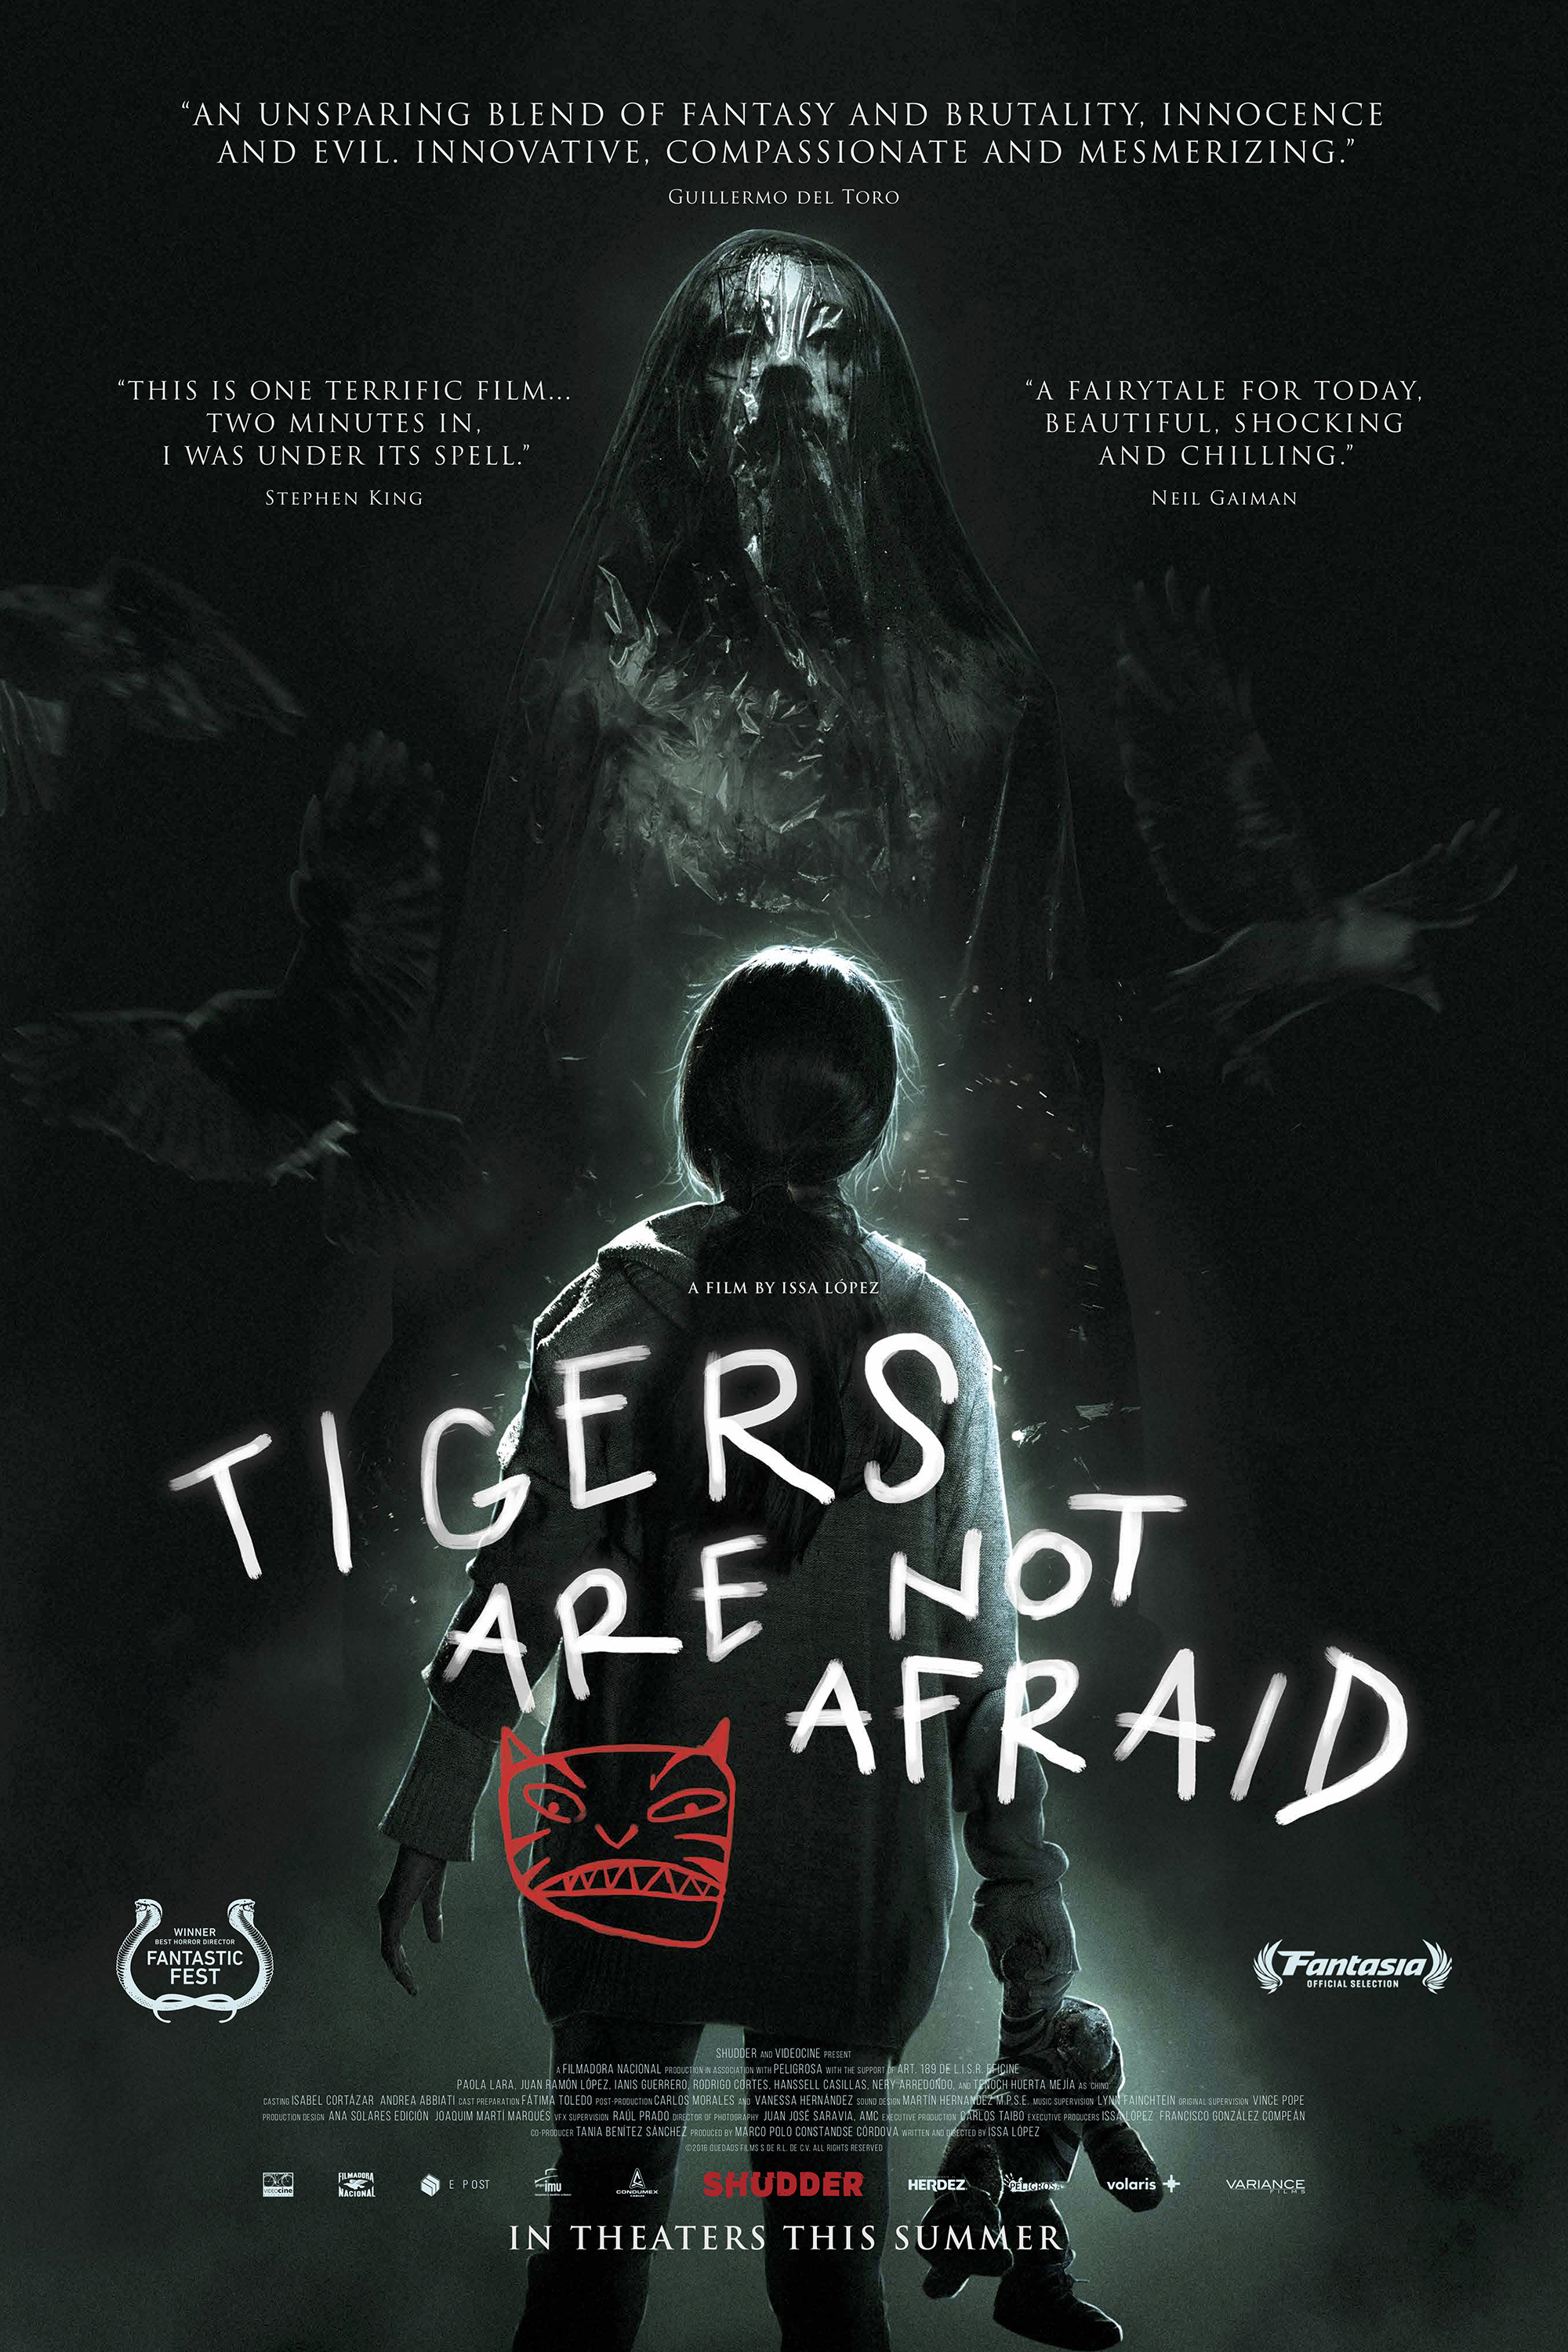 Poster of Tigers Are Not Afraid (Vuelven)